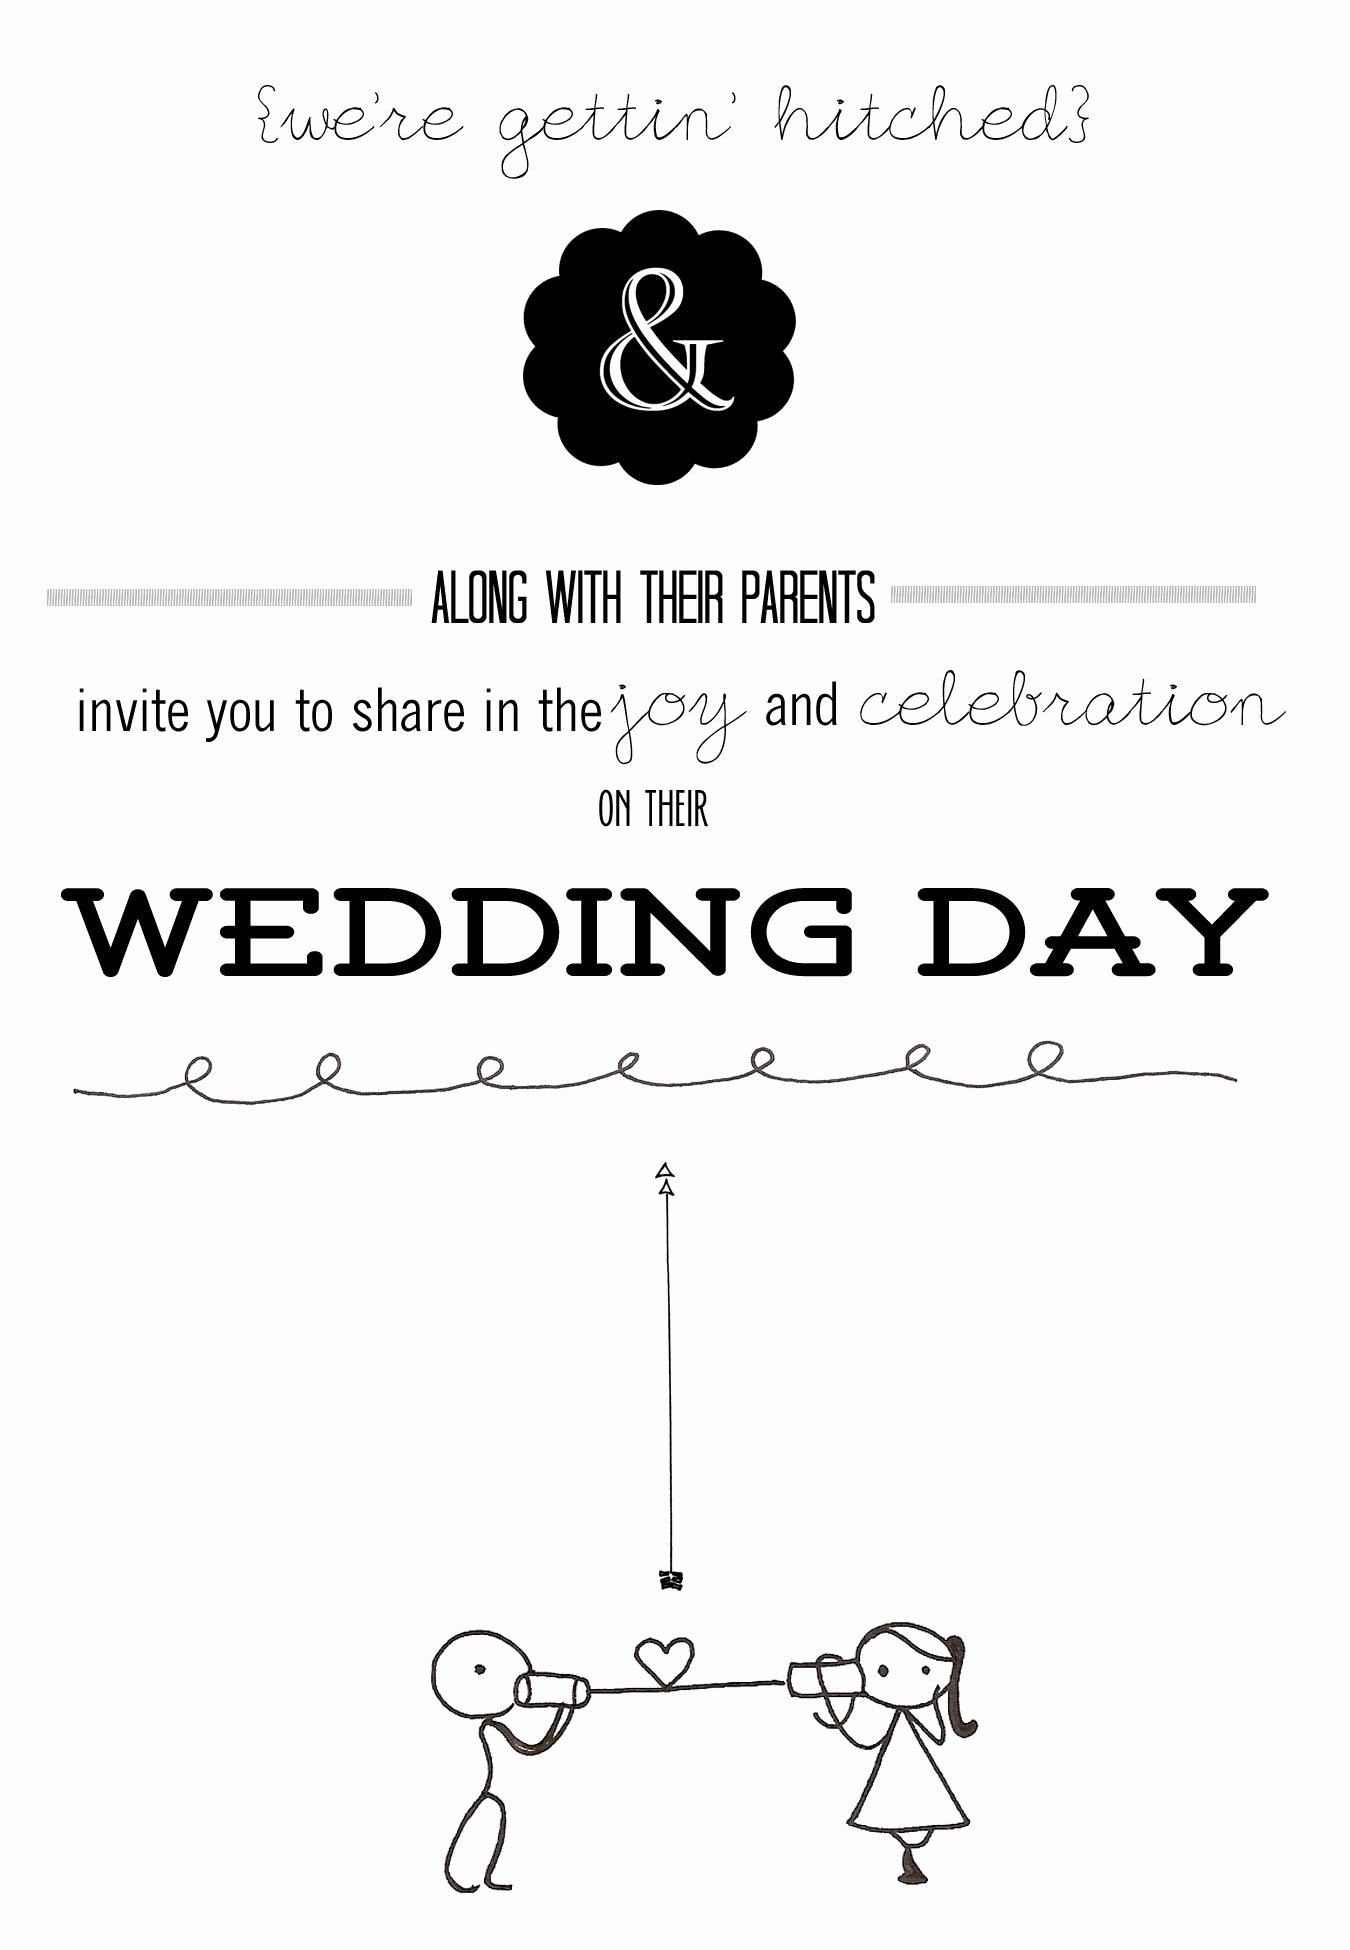 Ms Word Wedding Invitation Template Best Of Wedding Invitation Templates Word Wedding Invitation